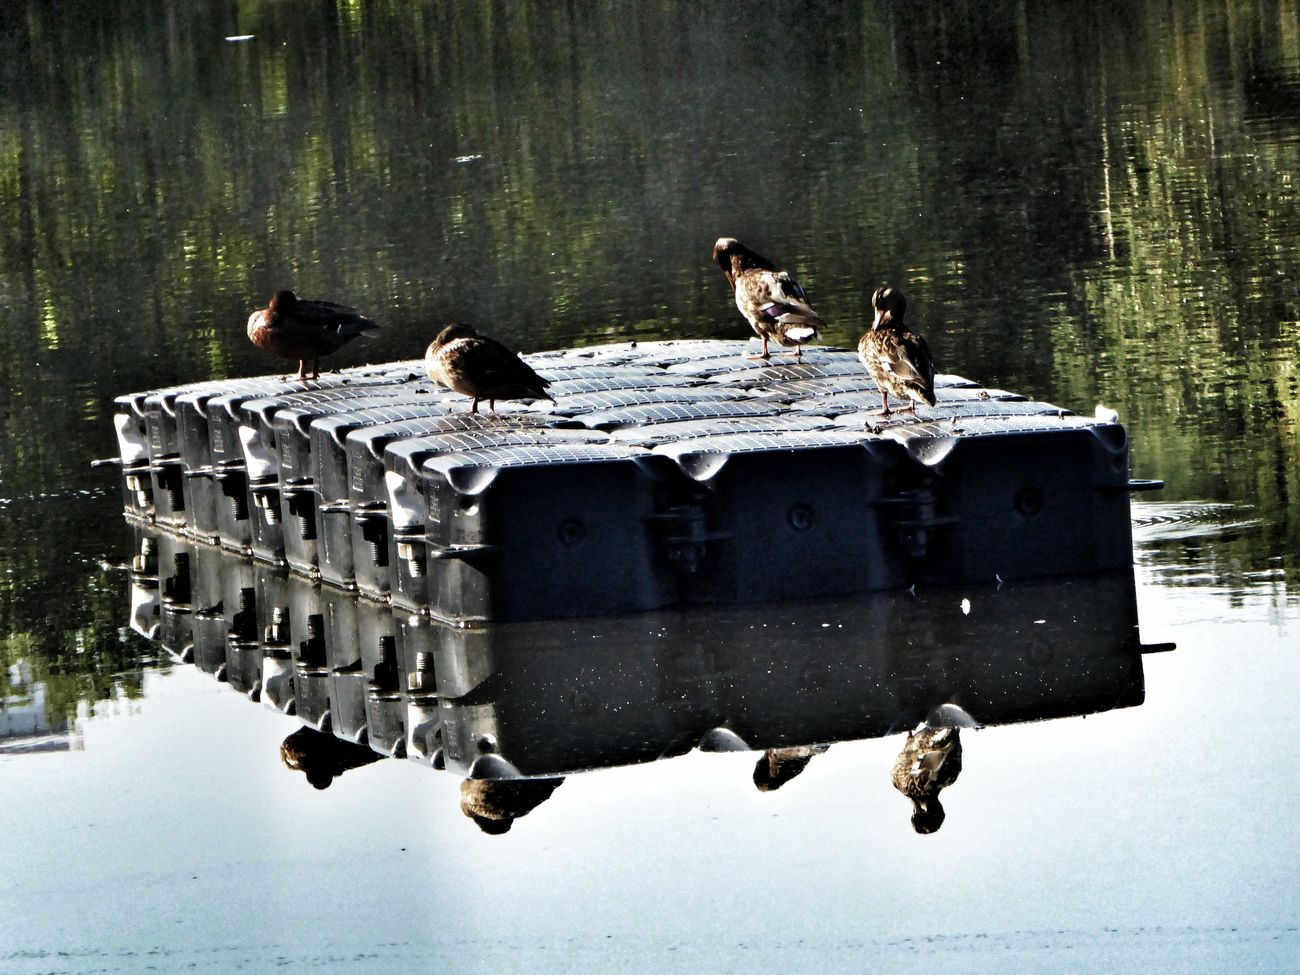 Ducks At The Lake Chillen Am See Reflection Tranquility Calm Enjoying The View Beauty In Nature Simple Beauty Autuum At The Lake Waterrefliction Reflection_collection Reflections In The Water Reflection Perfection